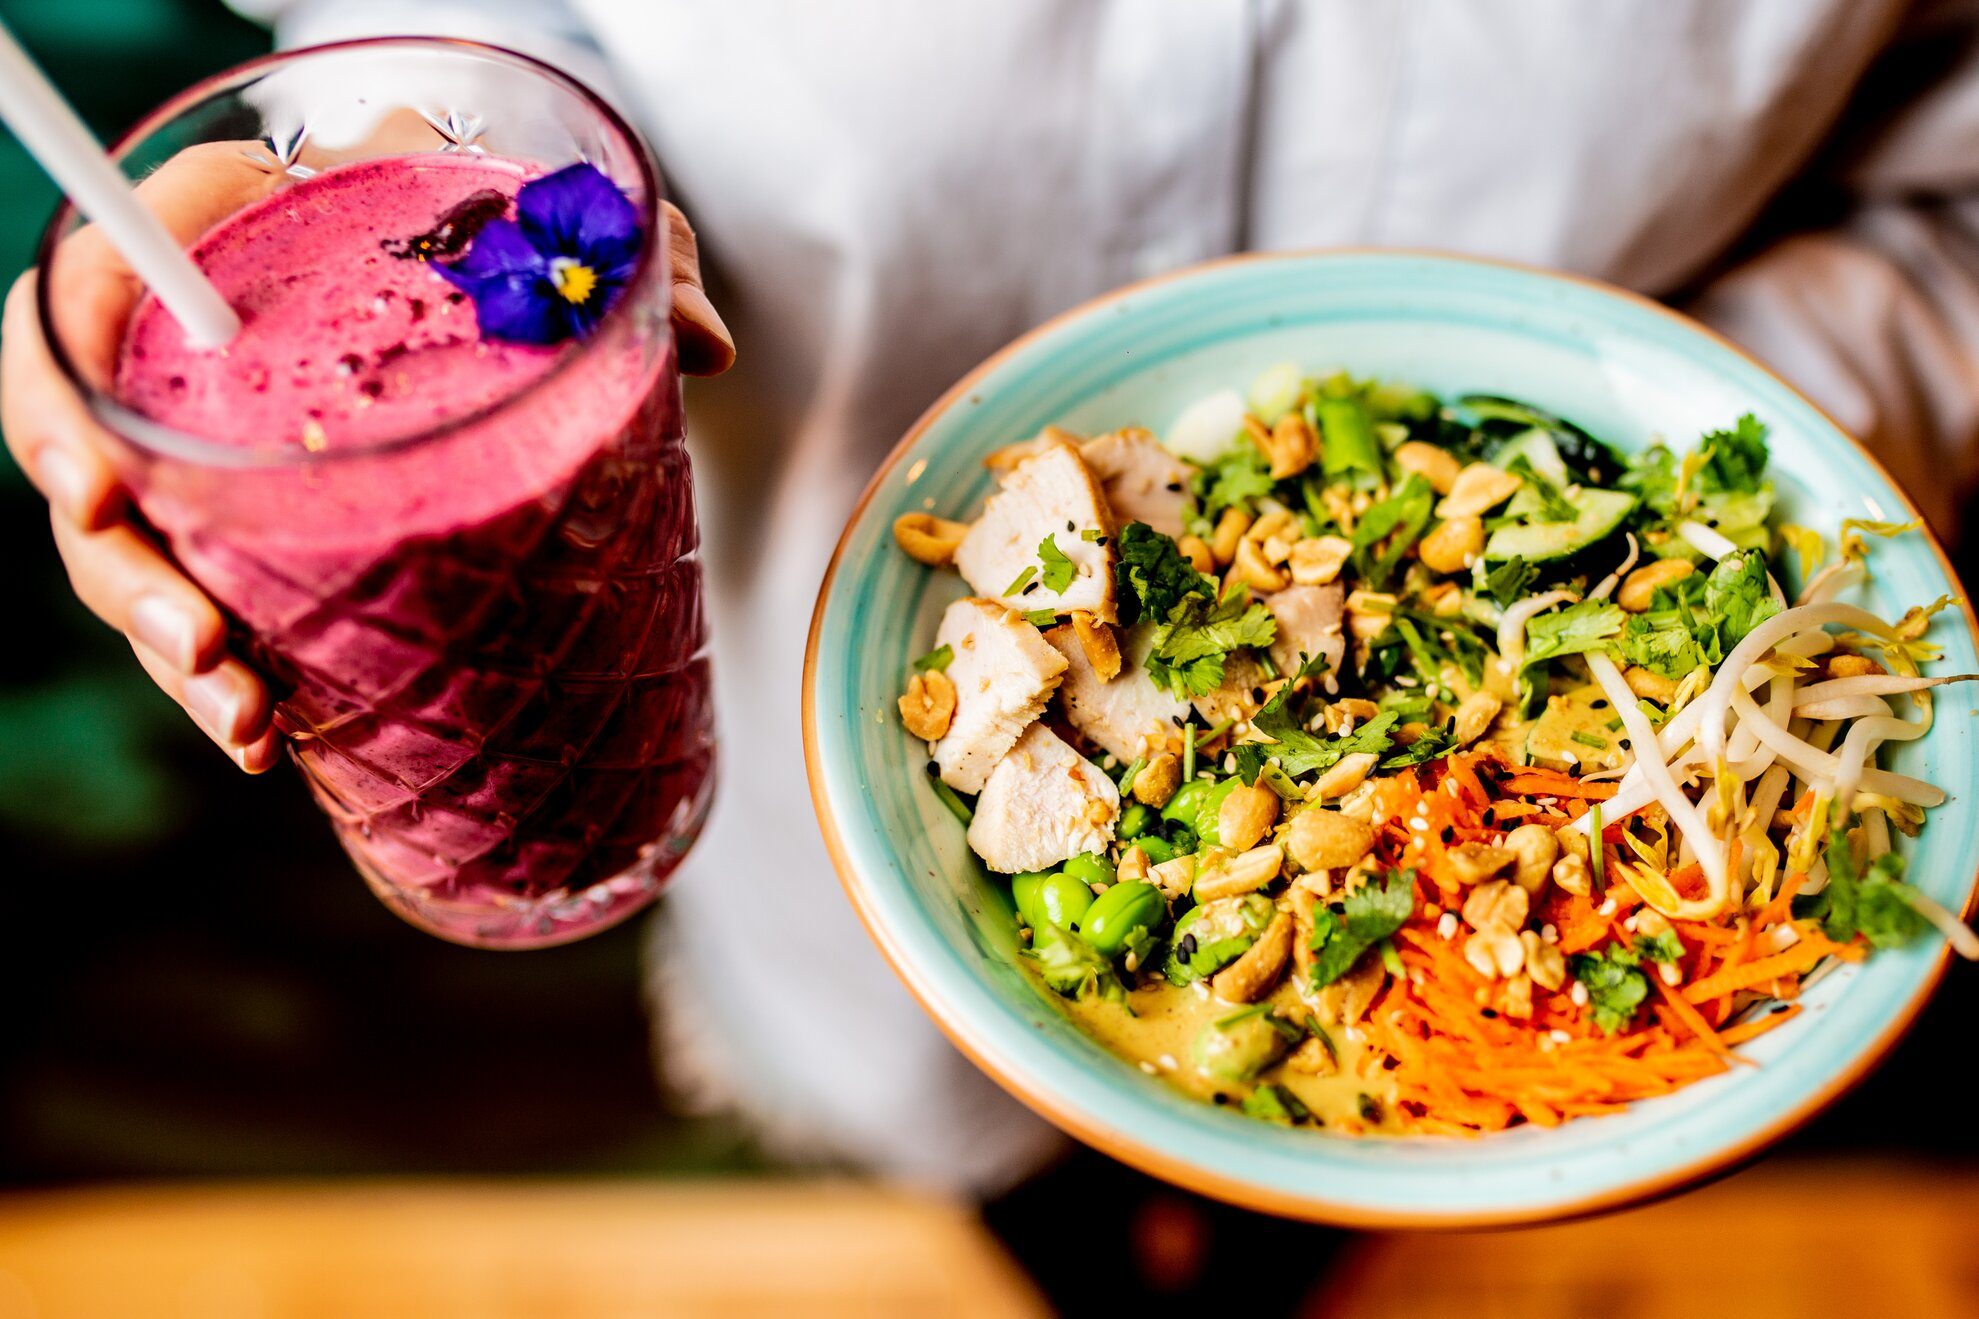 5 Budapest eateries ideal for a healthy but tasty winter